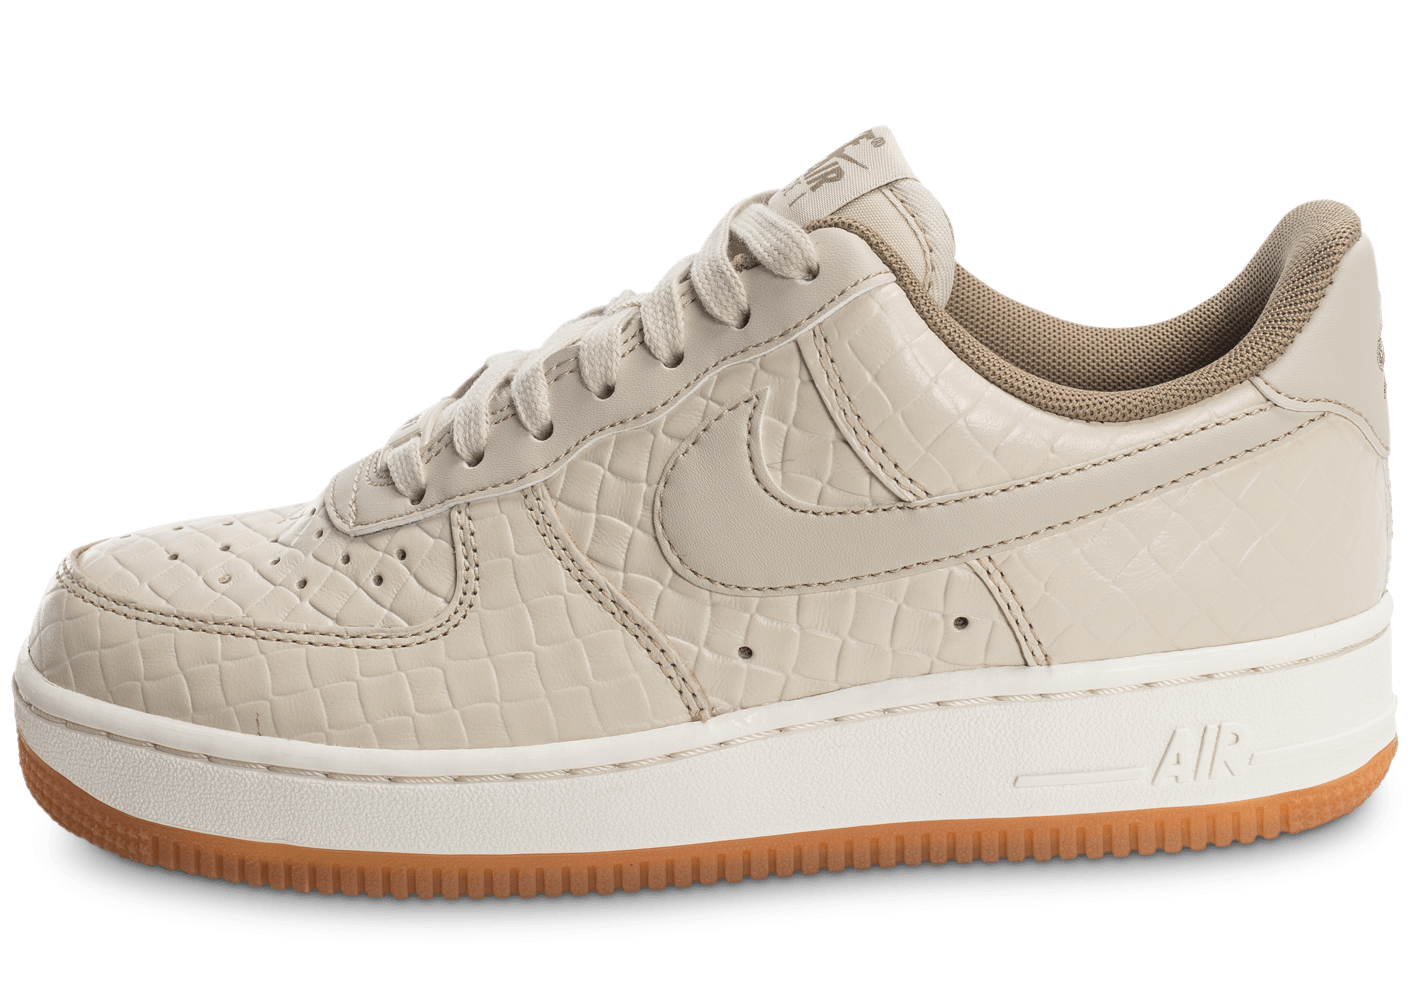 9bbbaa09206df Soldes air force 1 nike femme En Ligne Les Baskets air force 1 nike femme  en vente outlet. Nouvelle Collection air force 1 nike femme 2017 Grand  Choix!